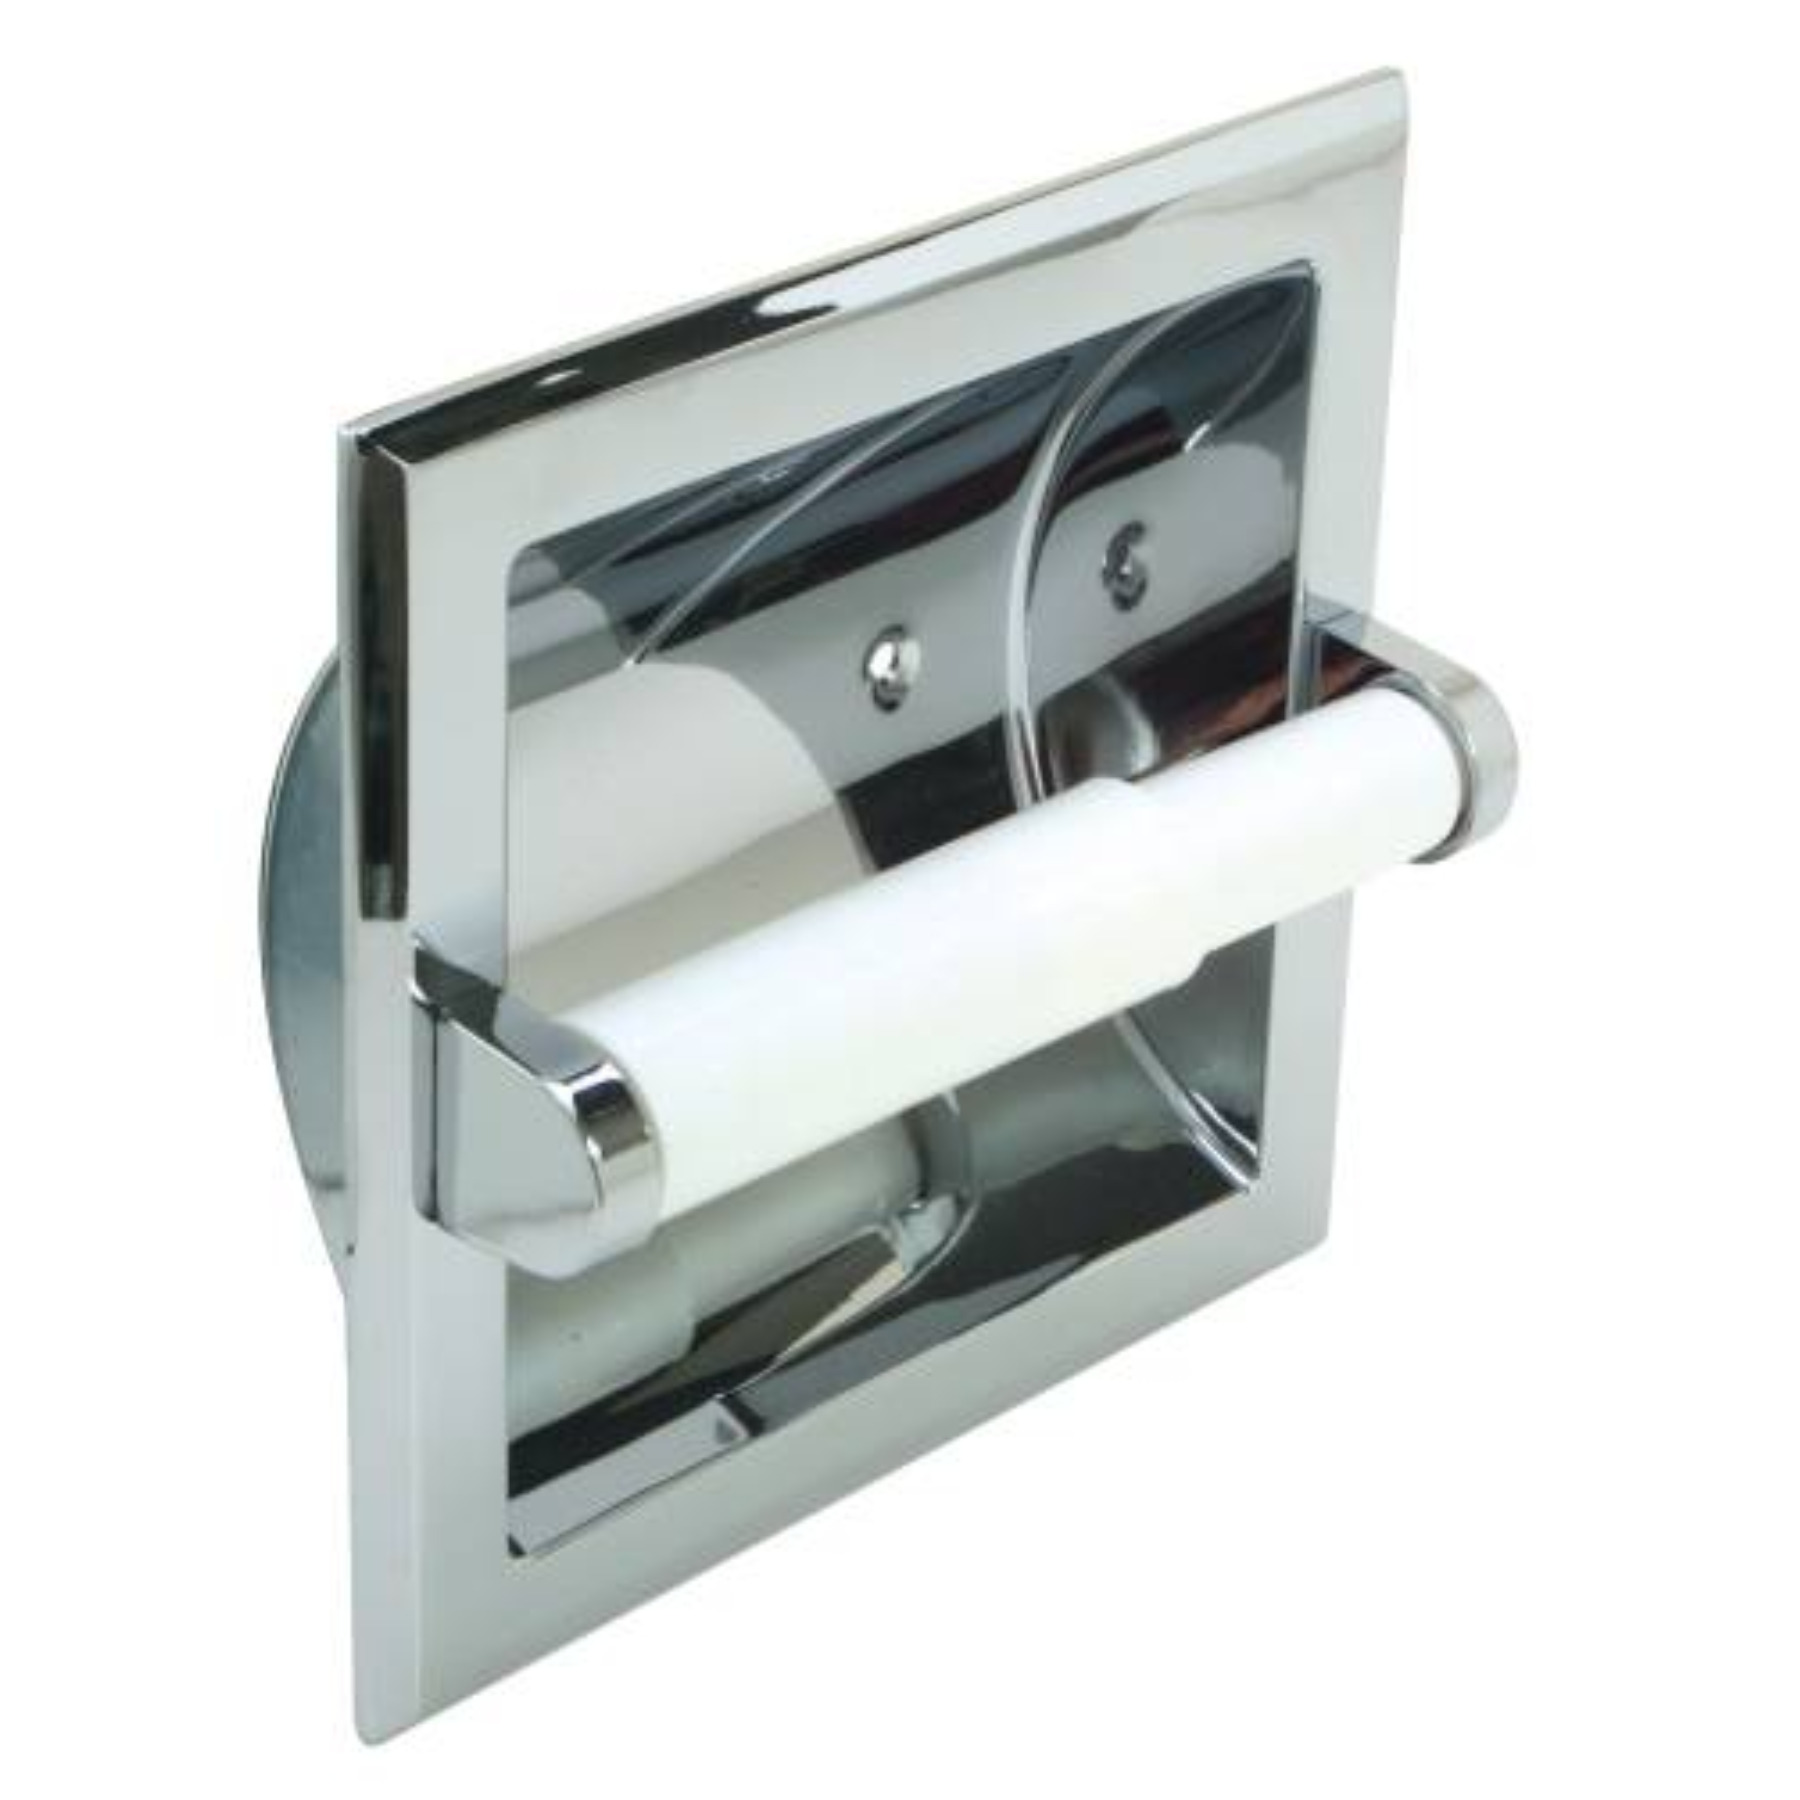 TOILET PAPER HOLDER AND ROLLER RECESSED